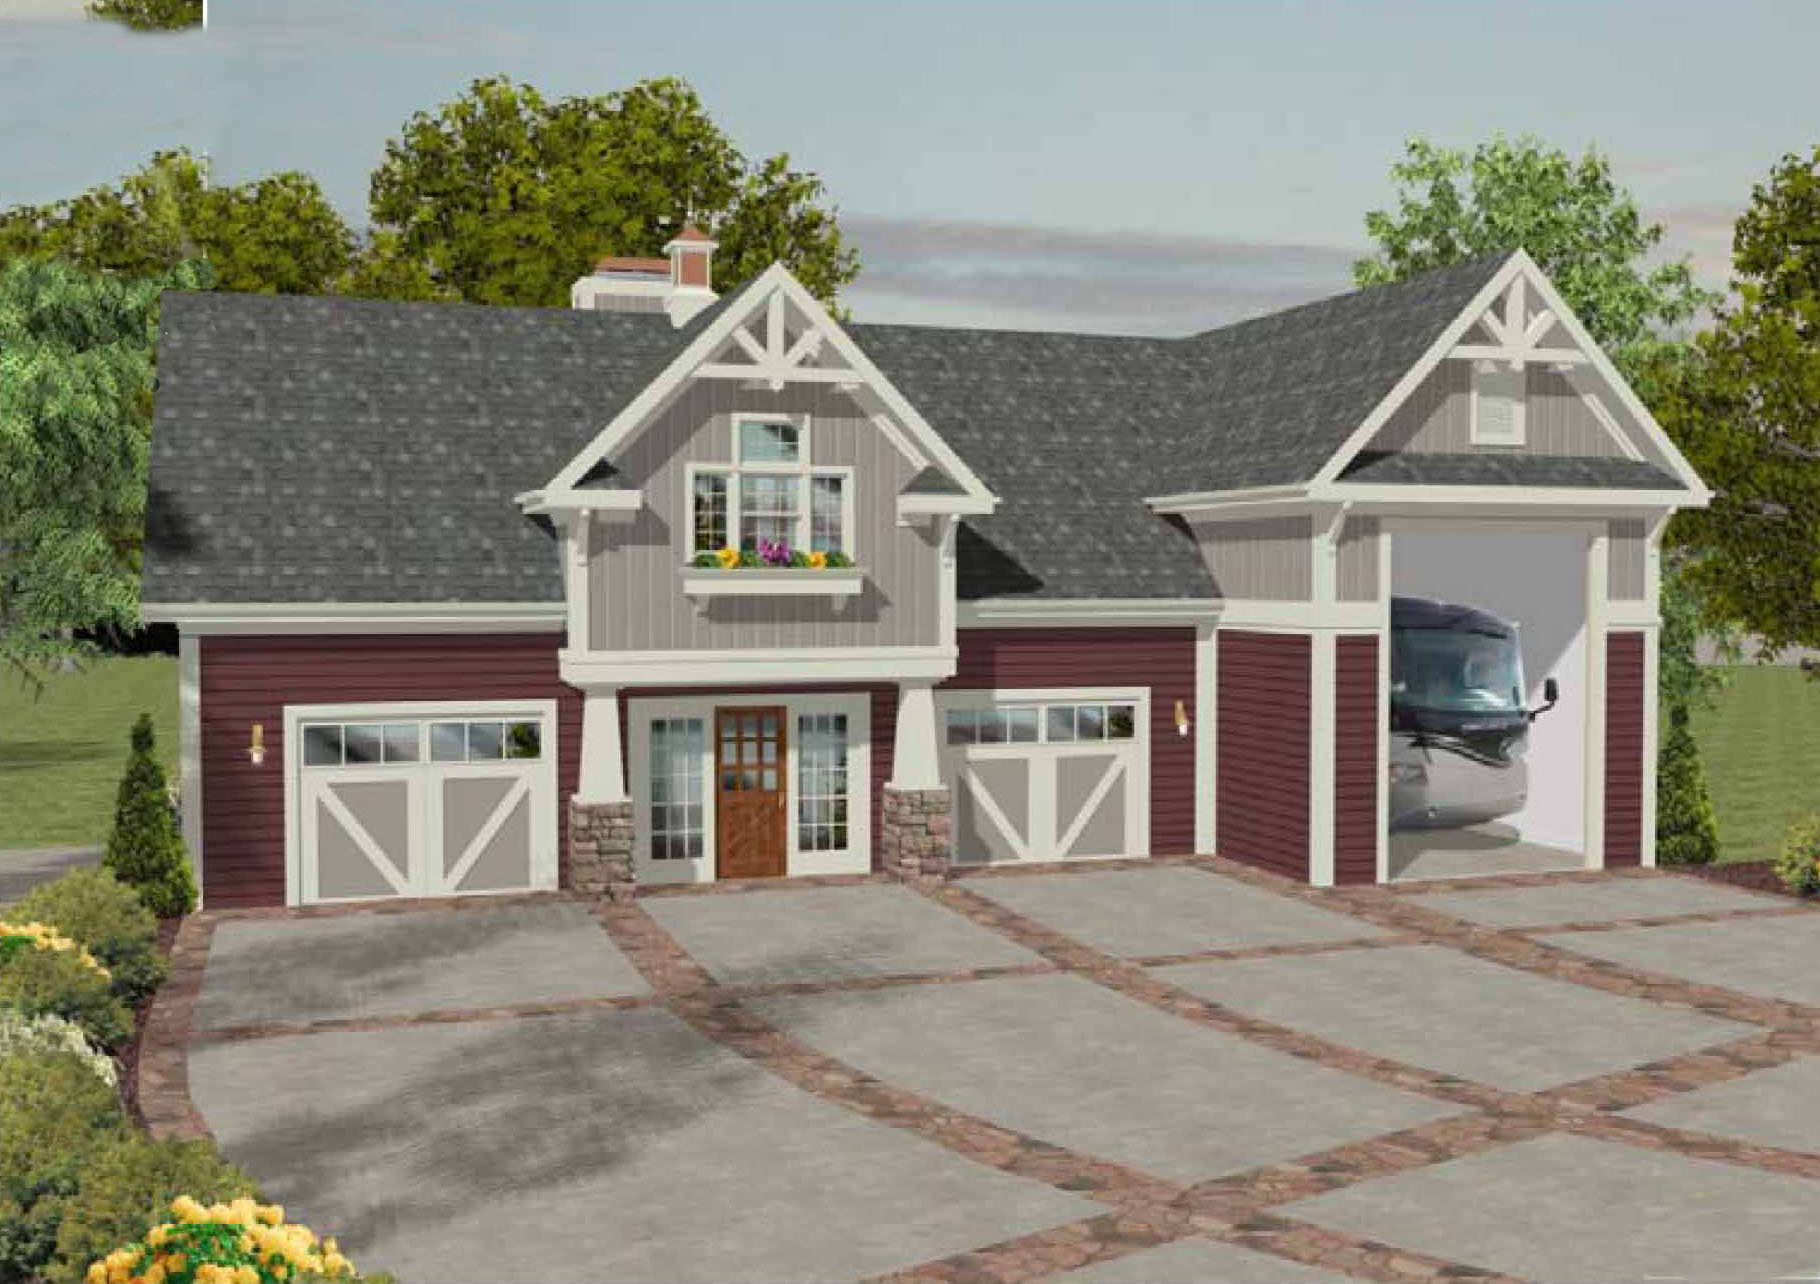 Architectural designs for Apartment homes with attached garage